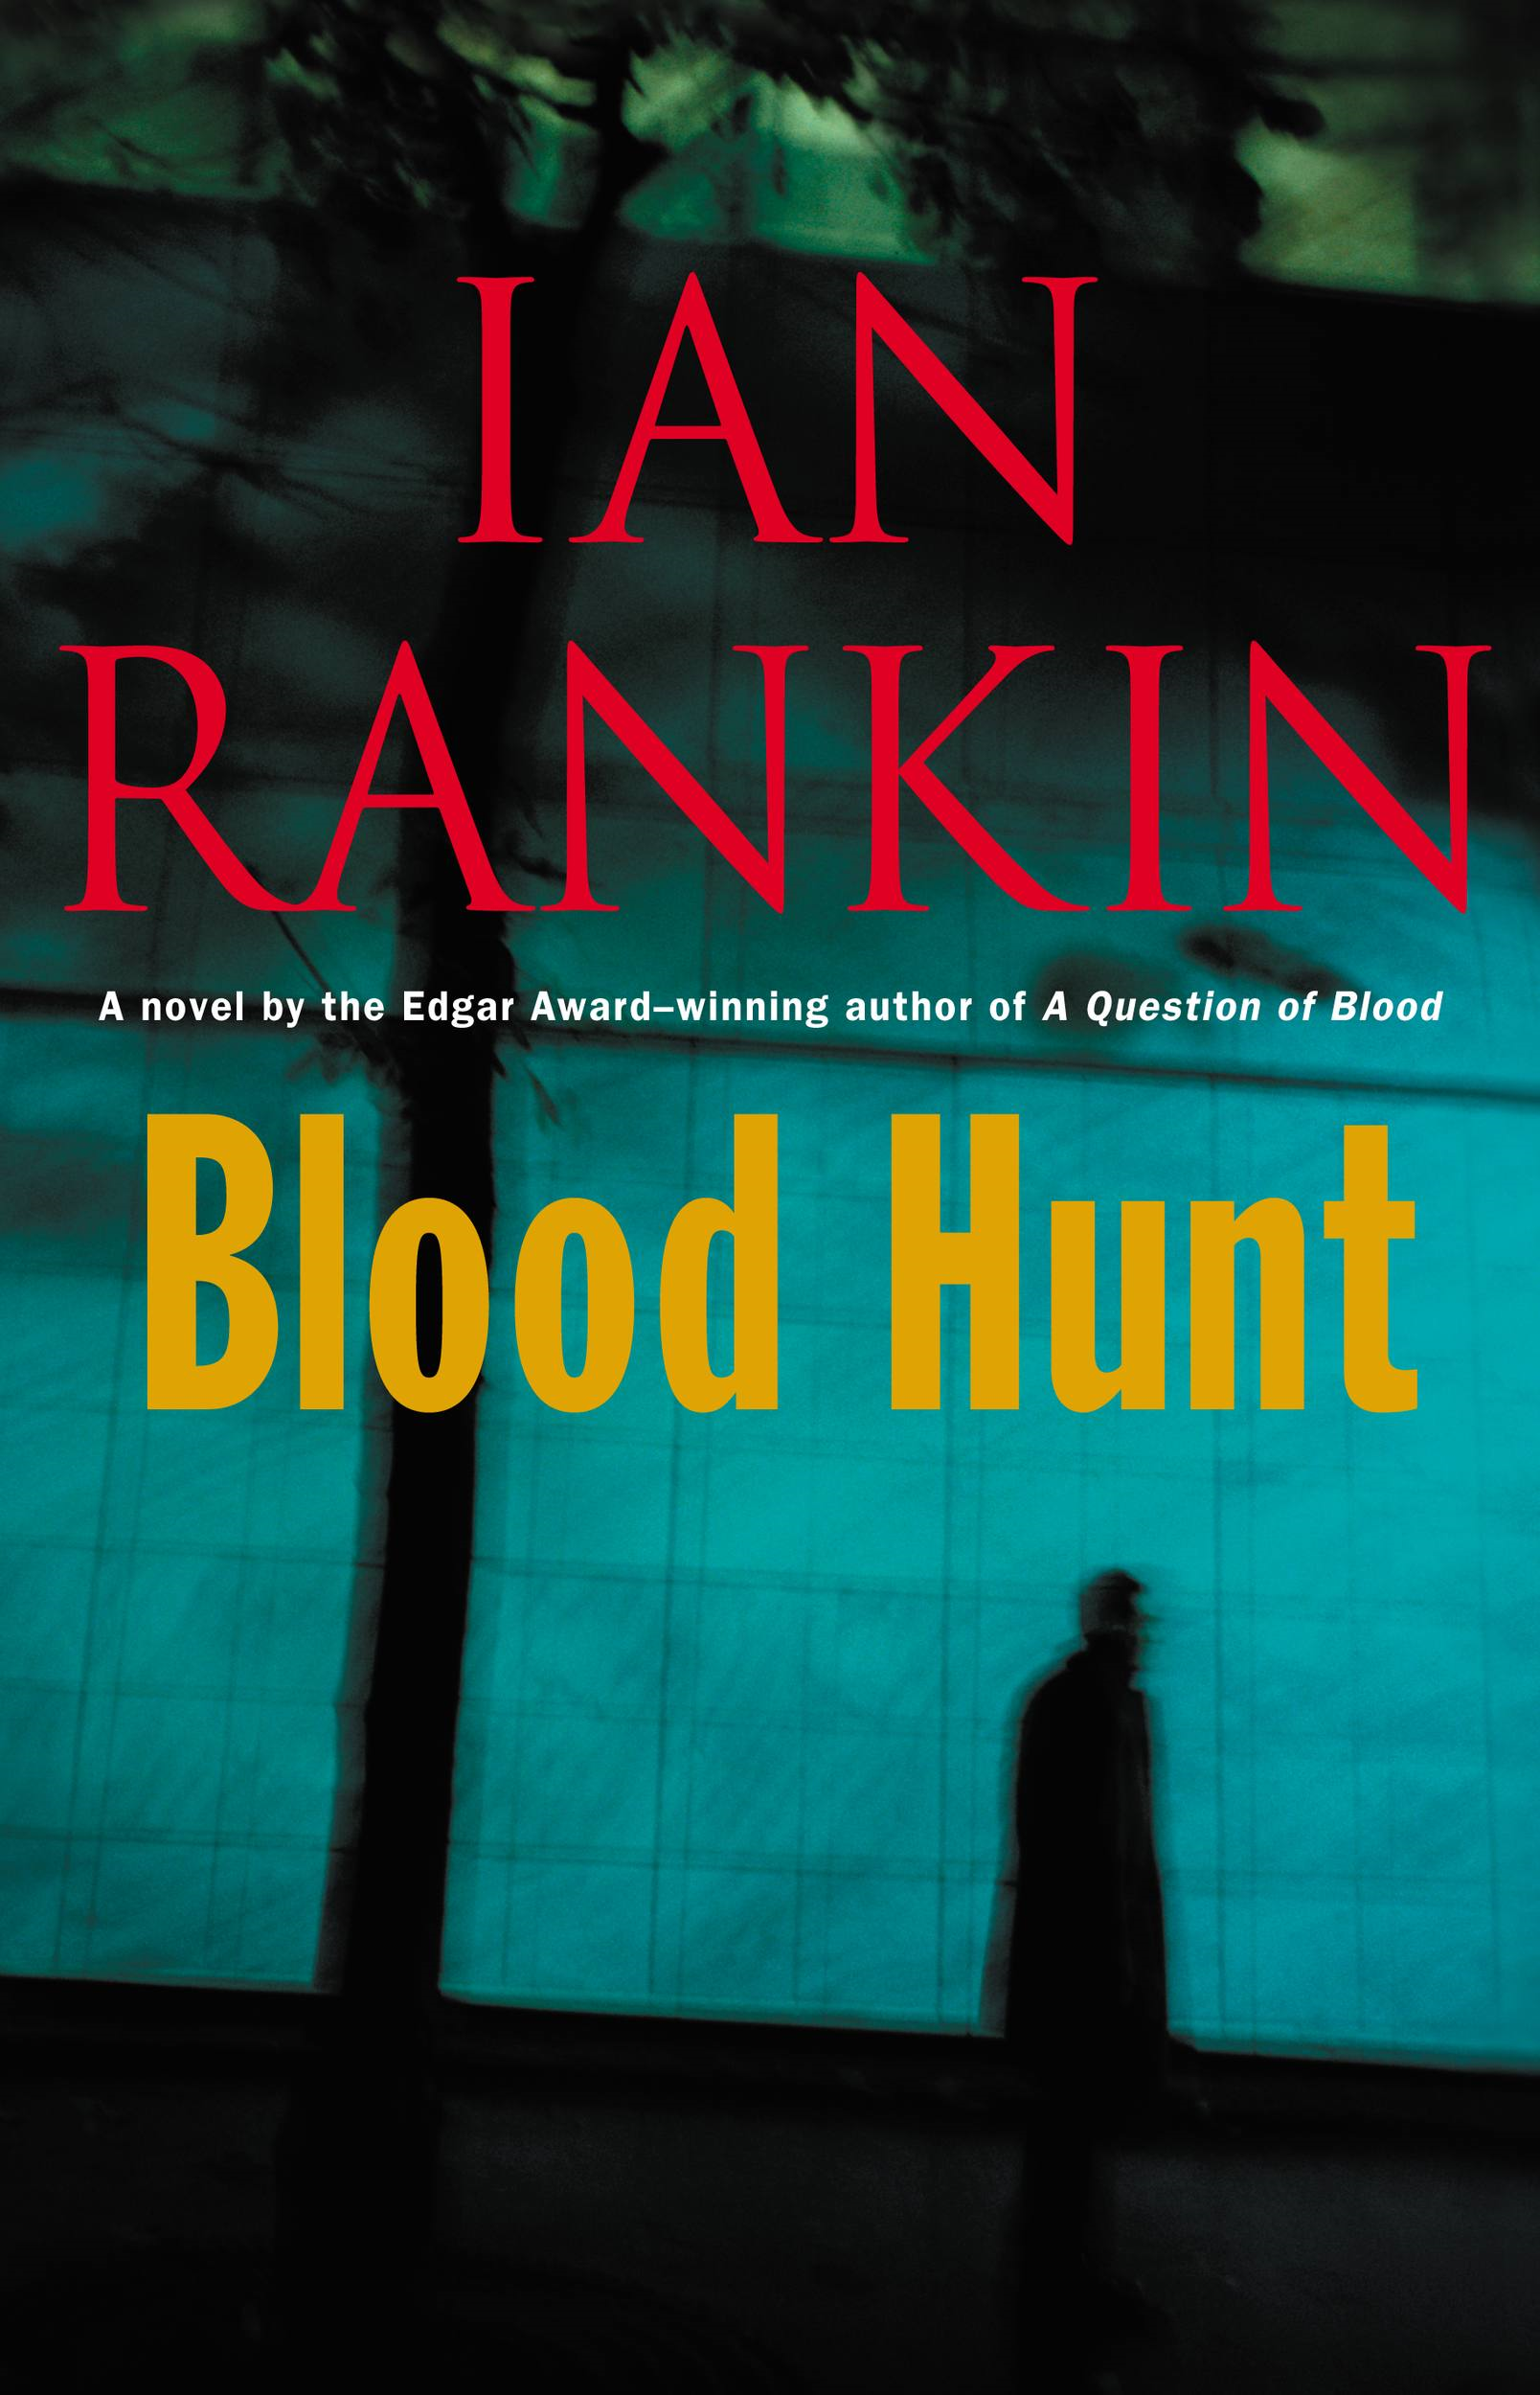 Blood Hunt By: Ian Rankin